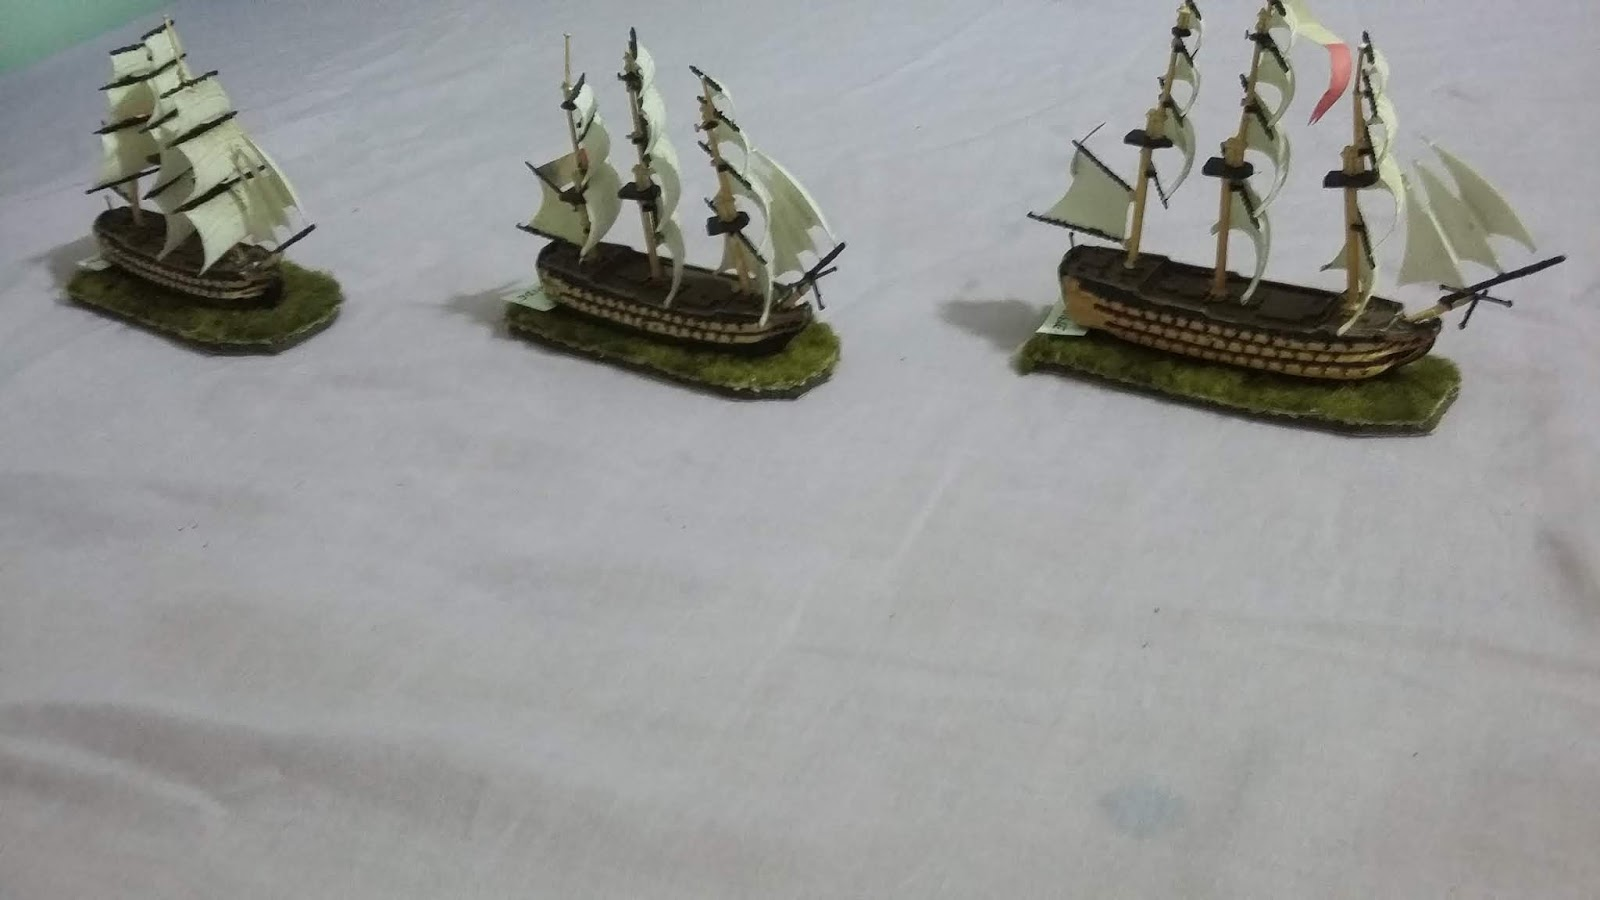 Light Bobs and Paint Blobs: Napoleonic Naval Wargaming